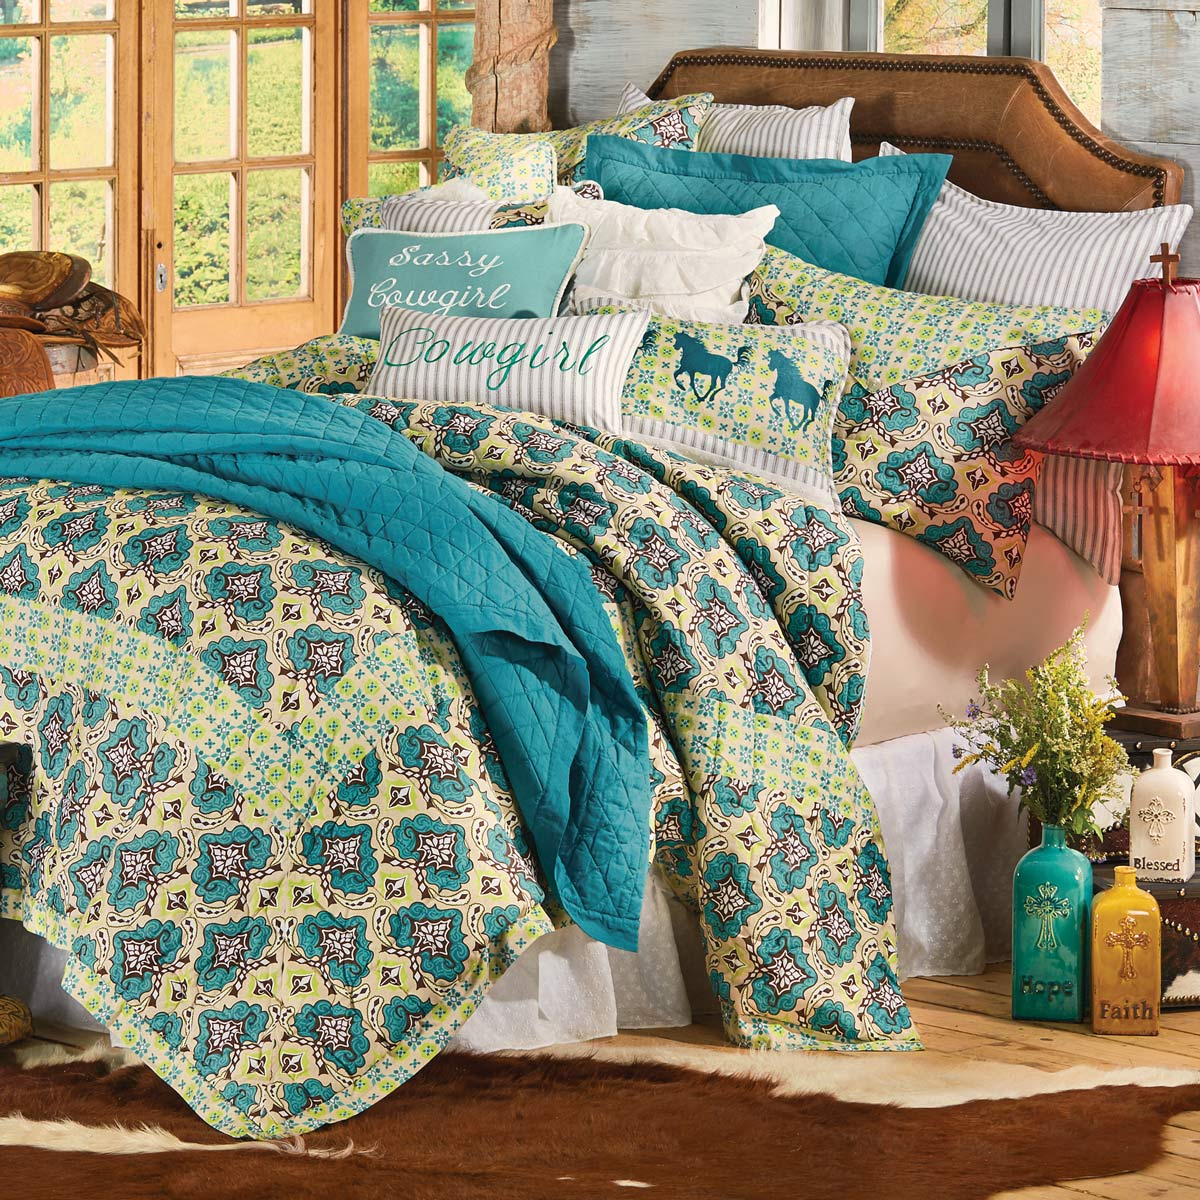 Black Forest Decor Western spring quilt bed set - king